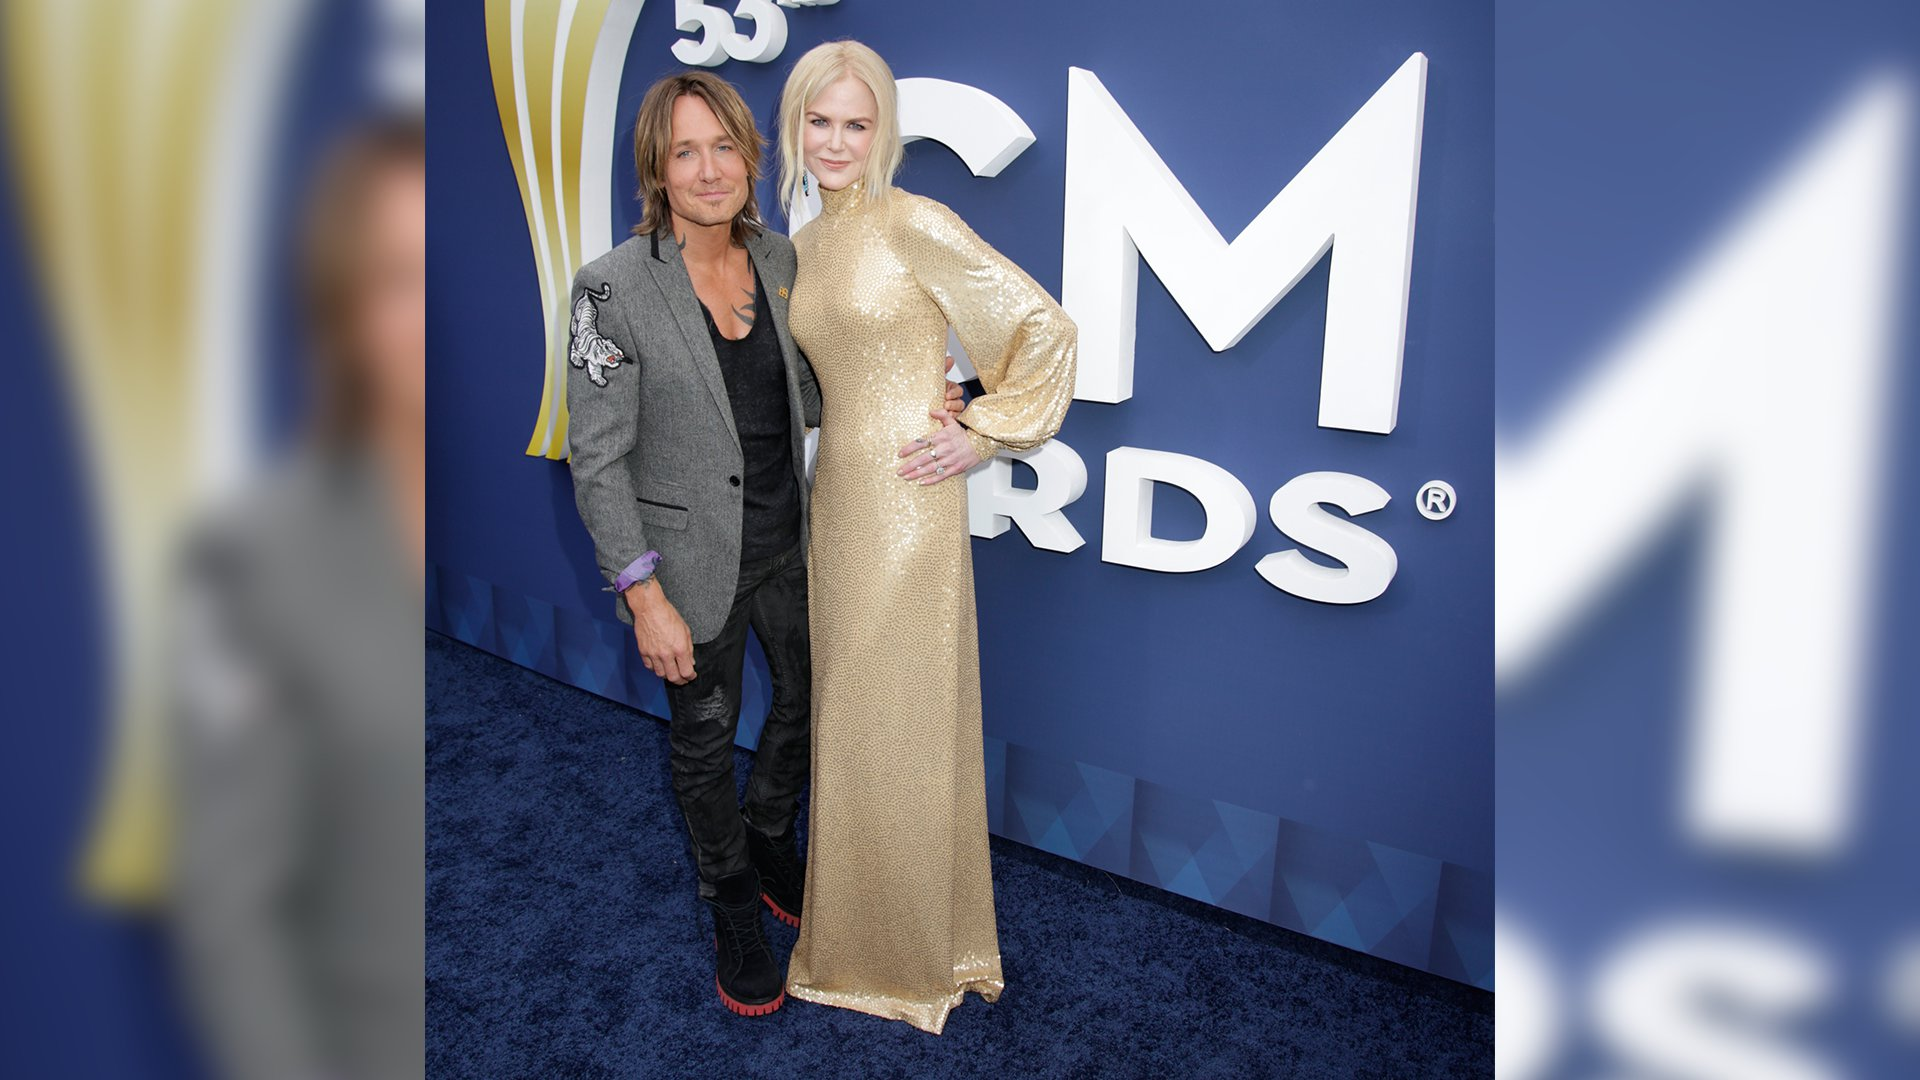 Keith Urban poses with wife Nicole Kidman, who looks statuesque in a floor-length gold gown.